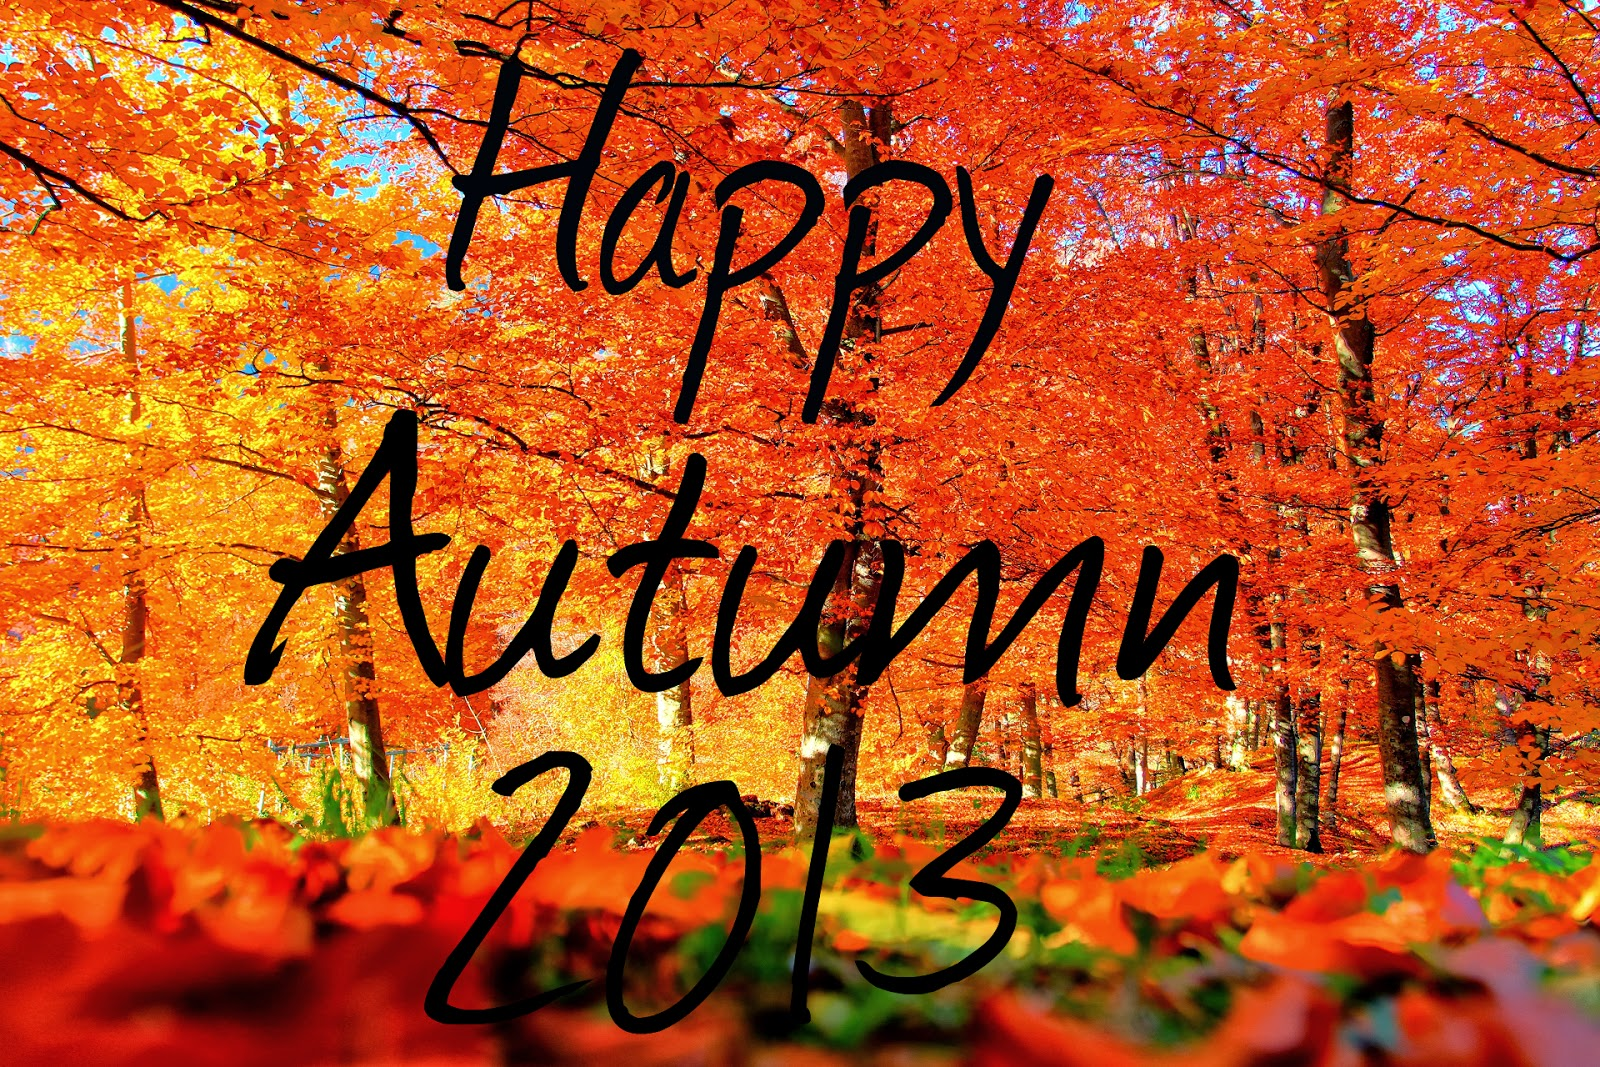 Fall Wallpaper For Your Phone Vintagevelvets Happy Autumn 2013 22 Stunning